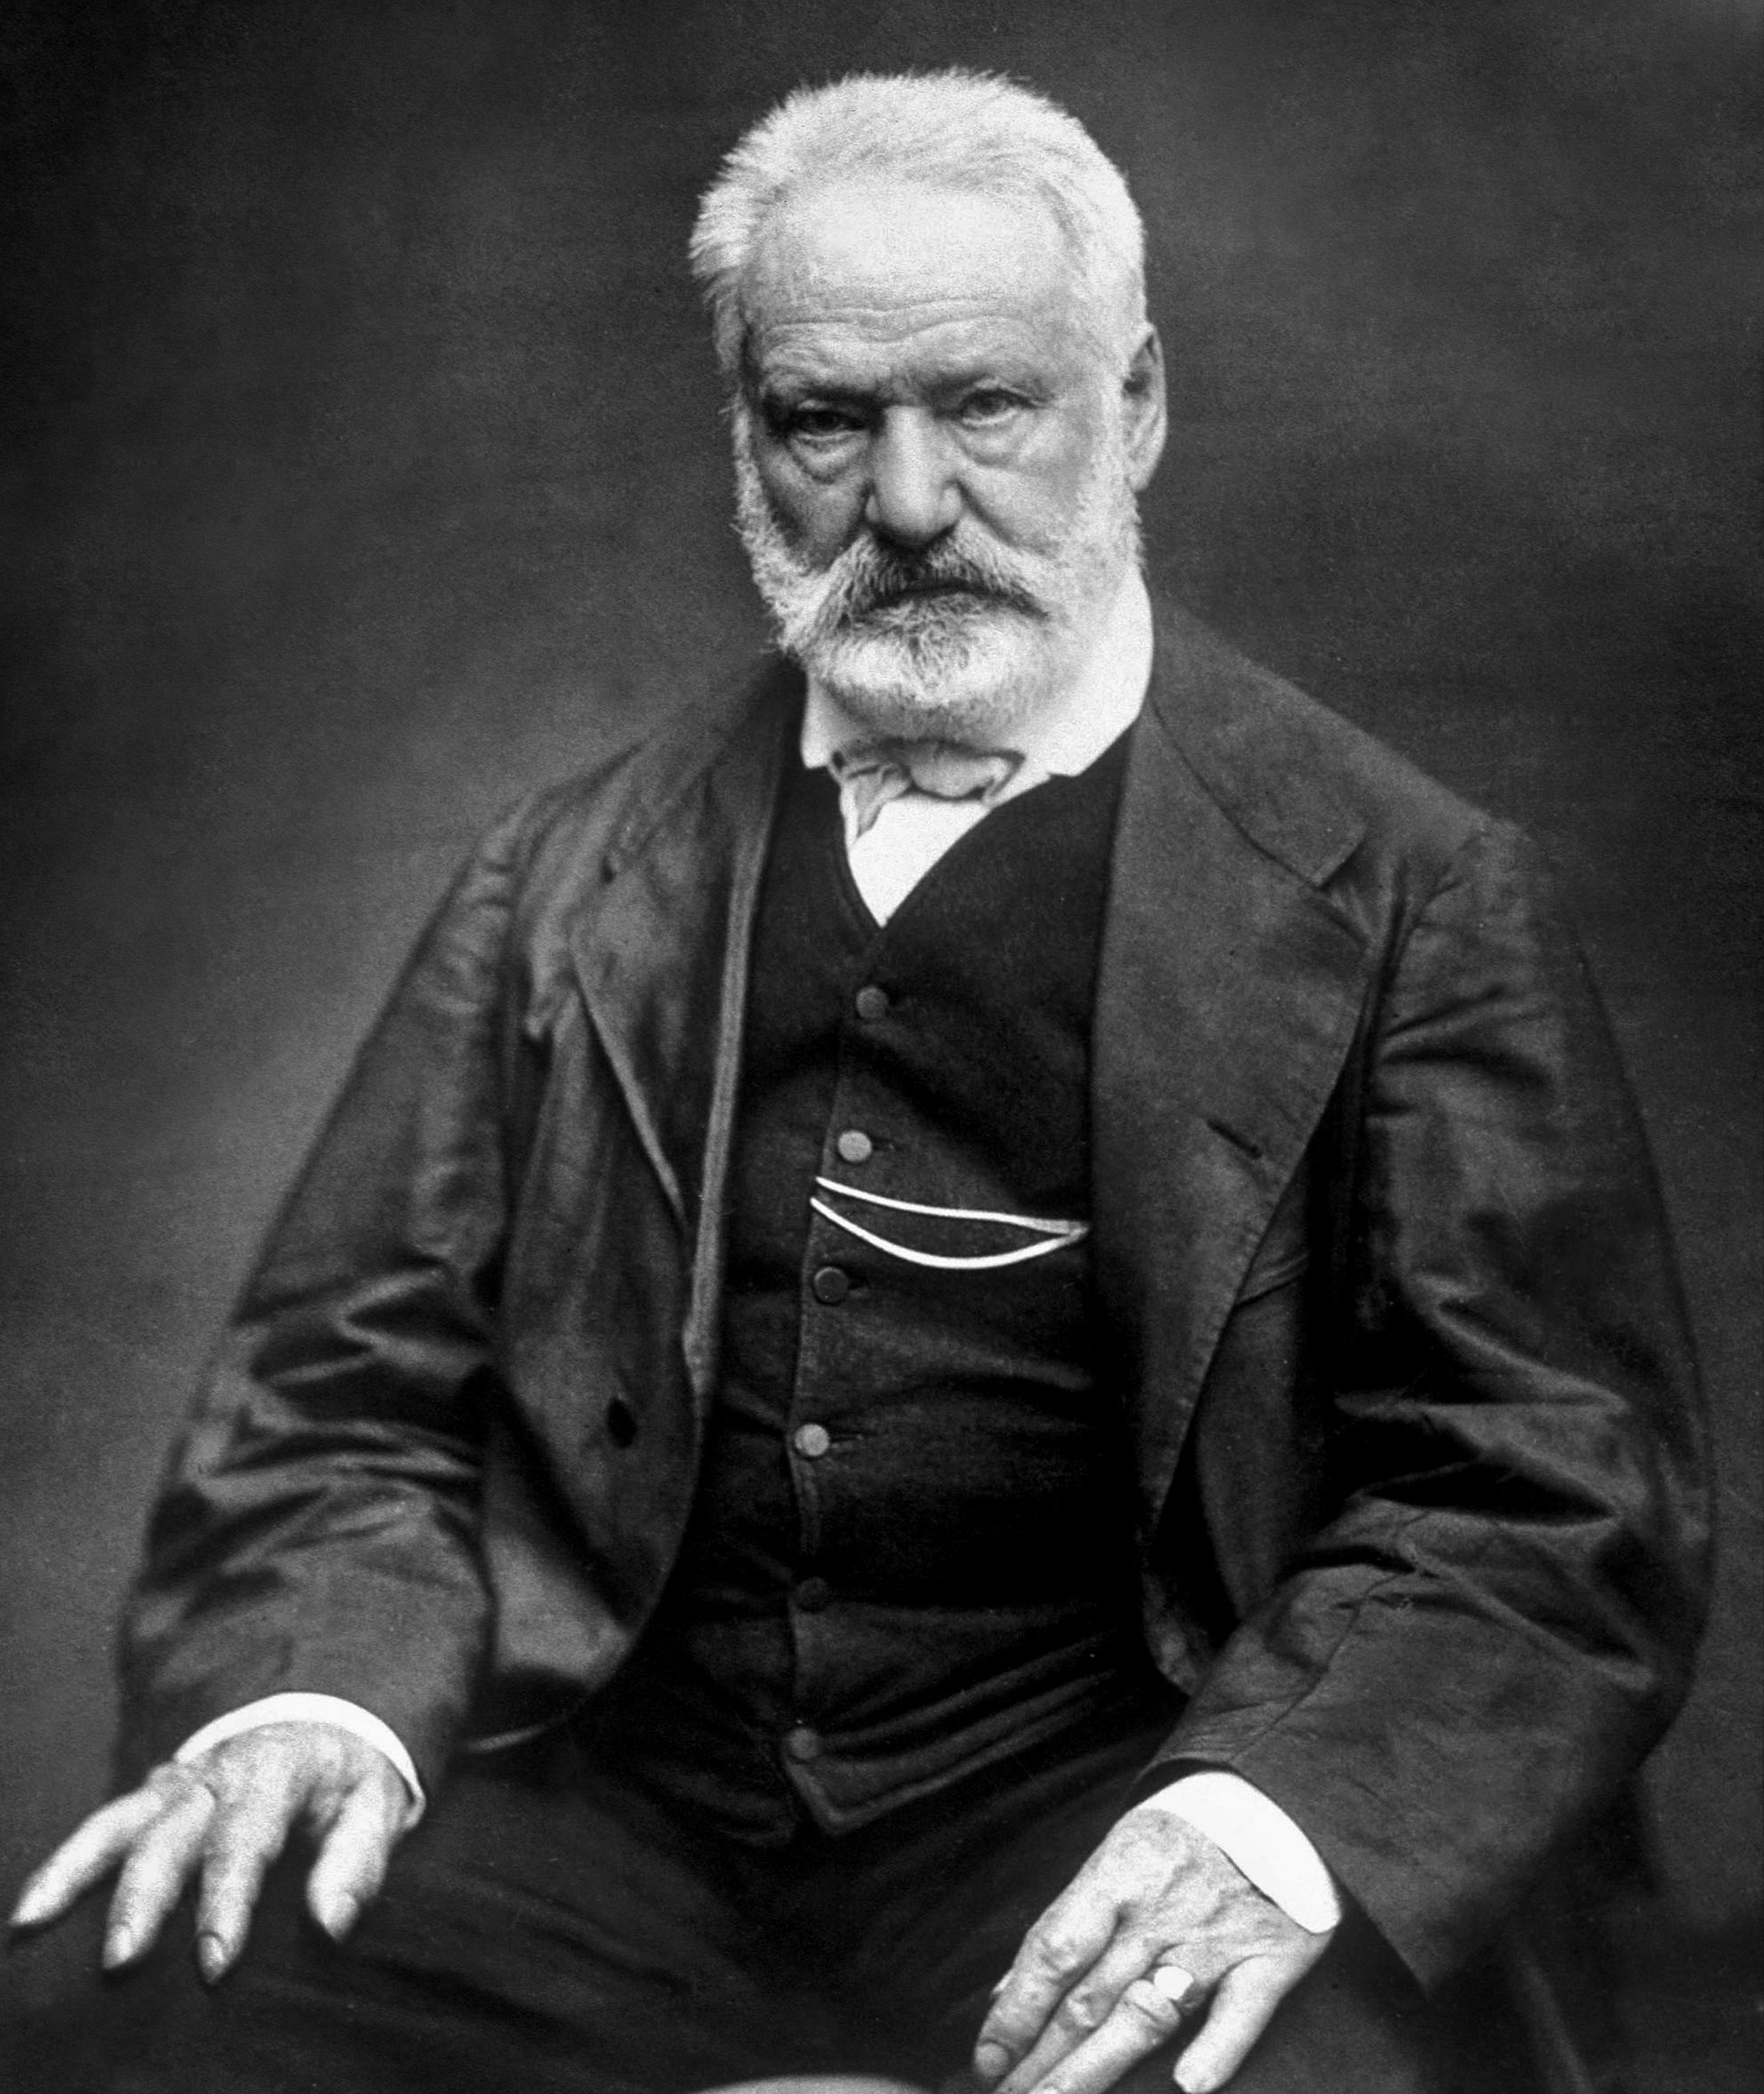 Victor Hugo (1802-1885) french poet and novelist here in 1876, photo by Etienne Carjat